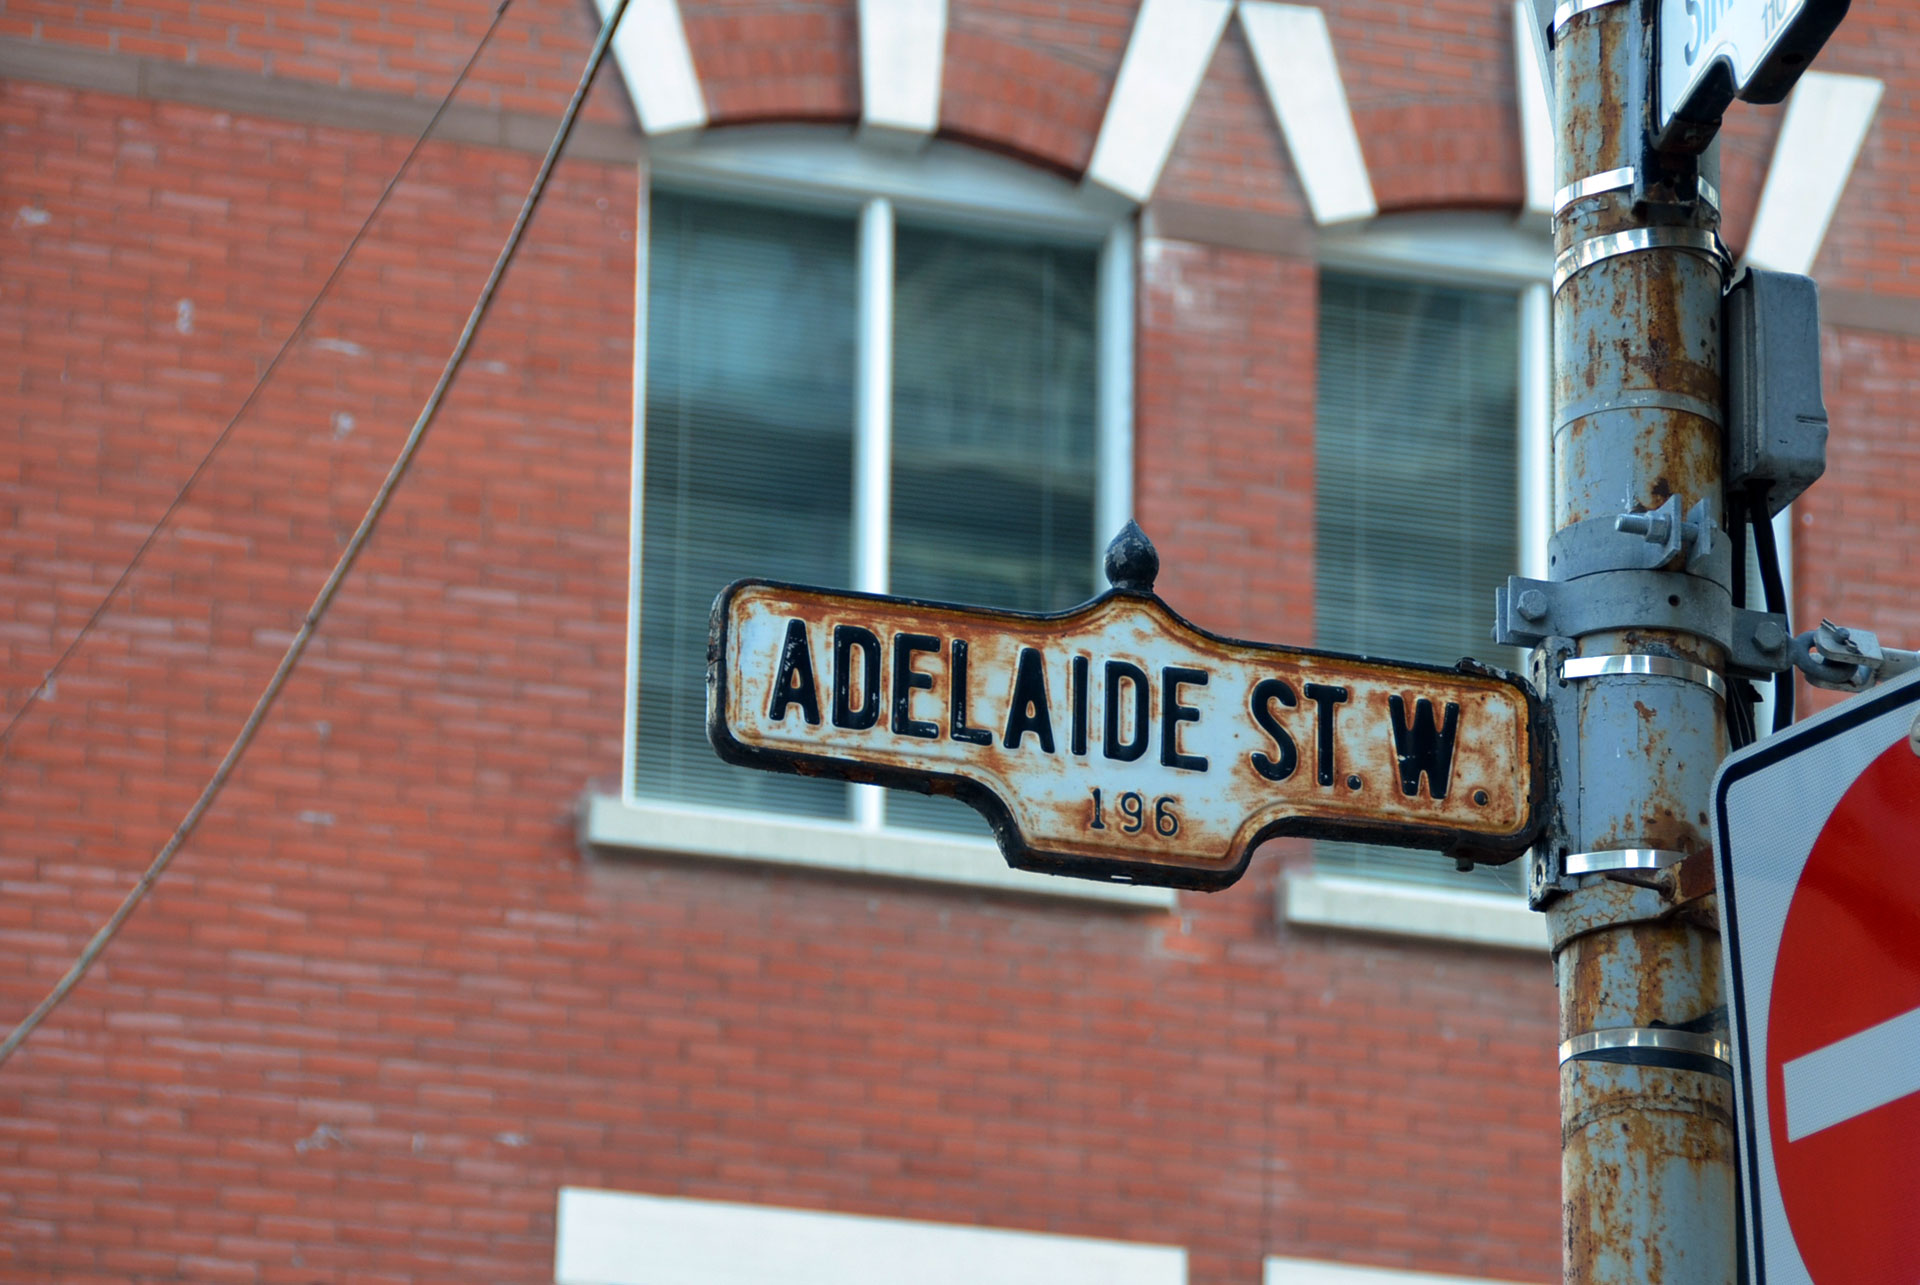 Adelaide Street West